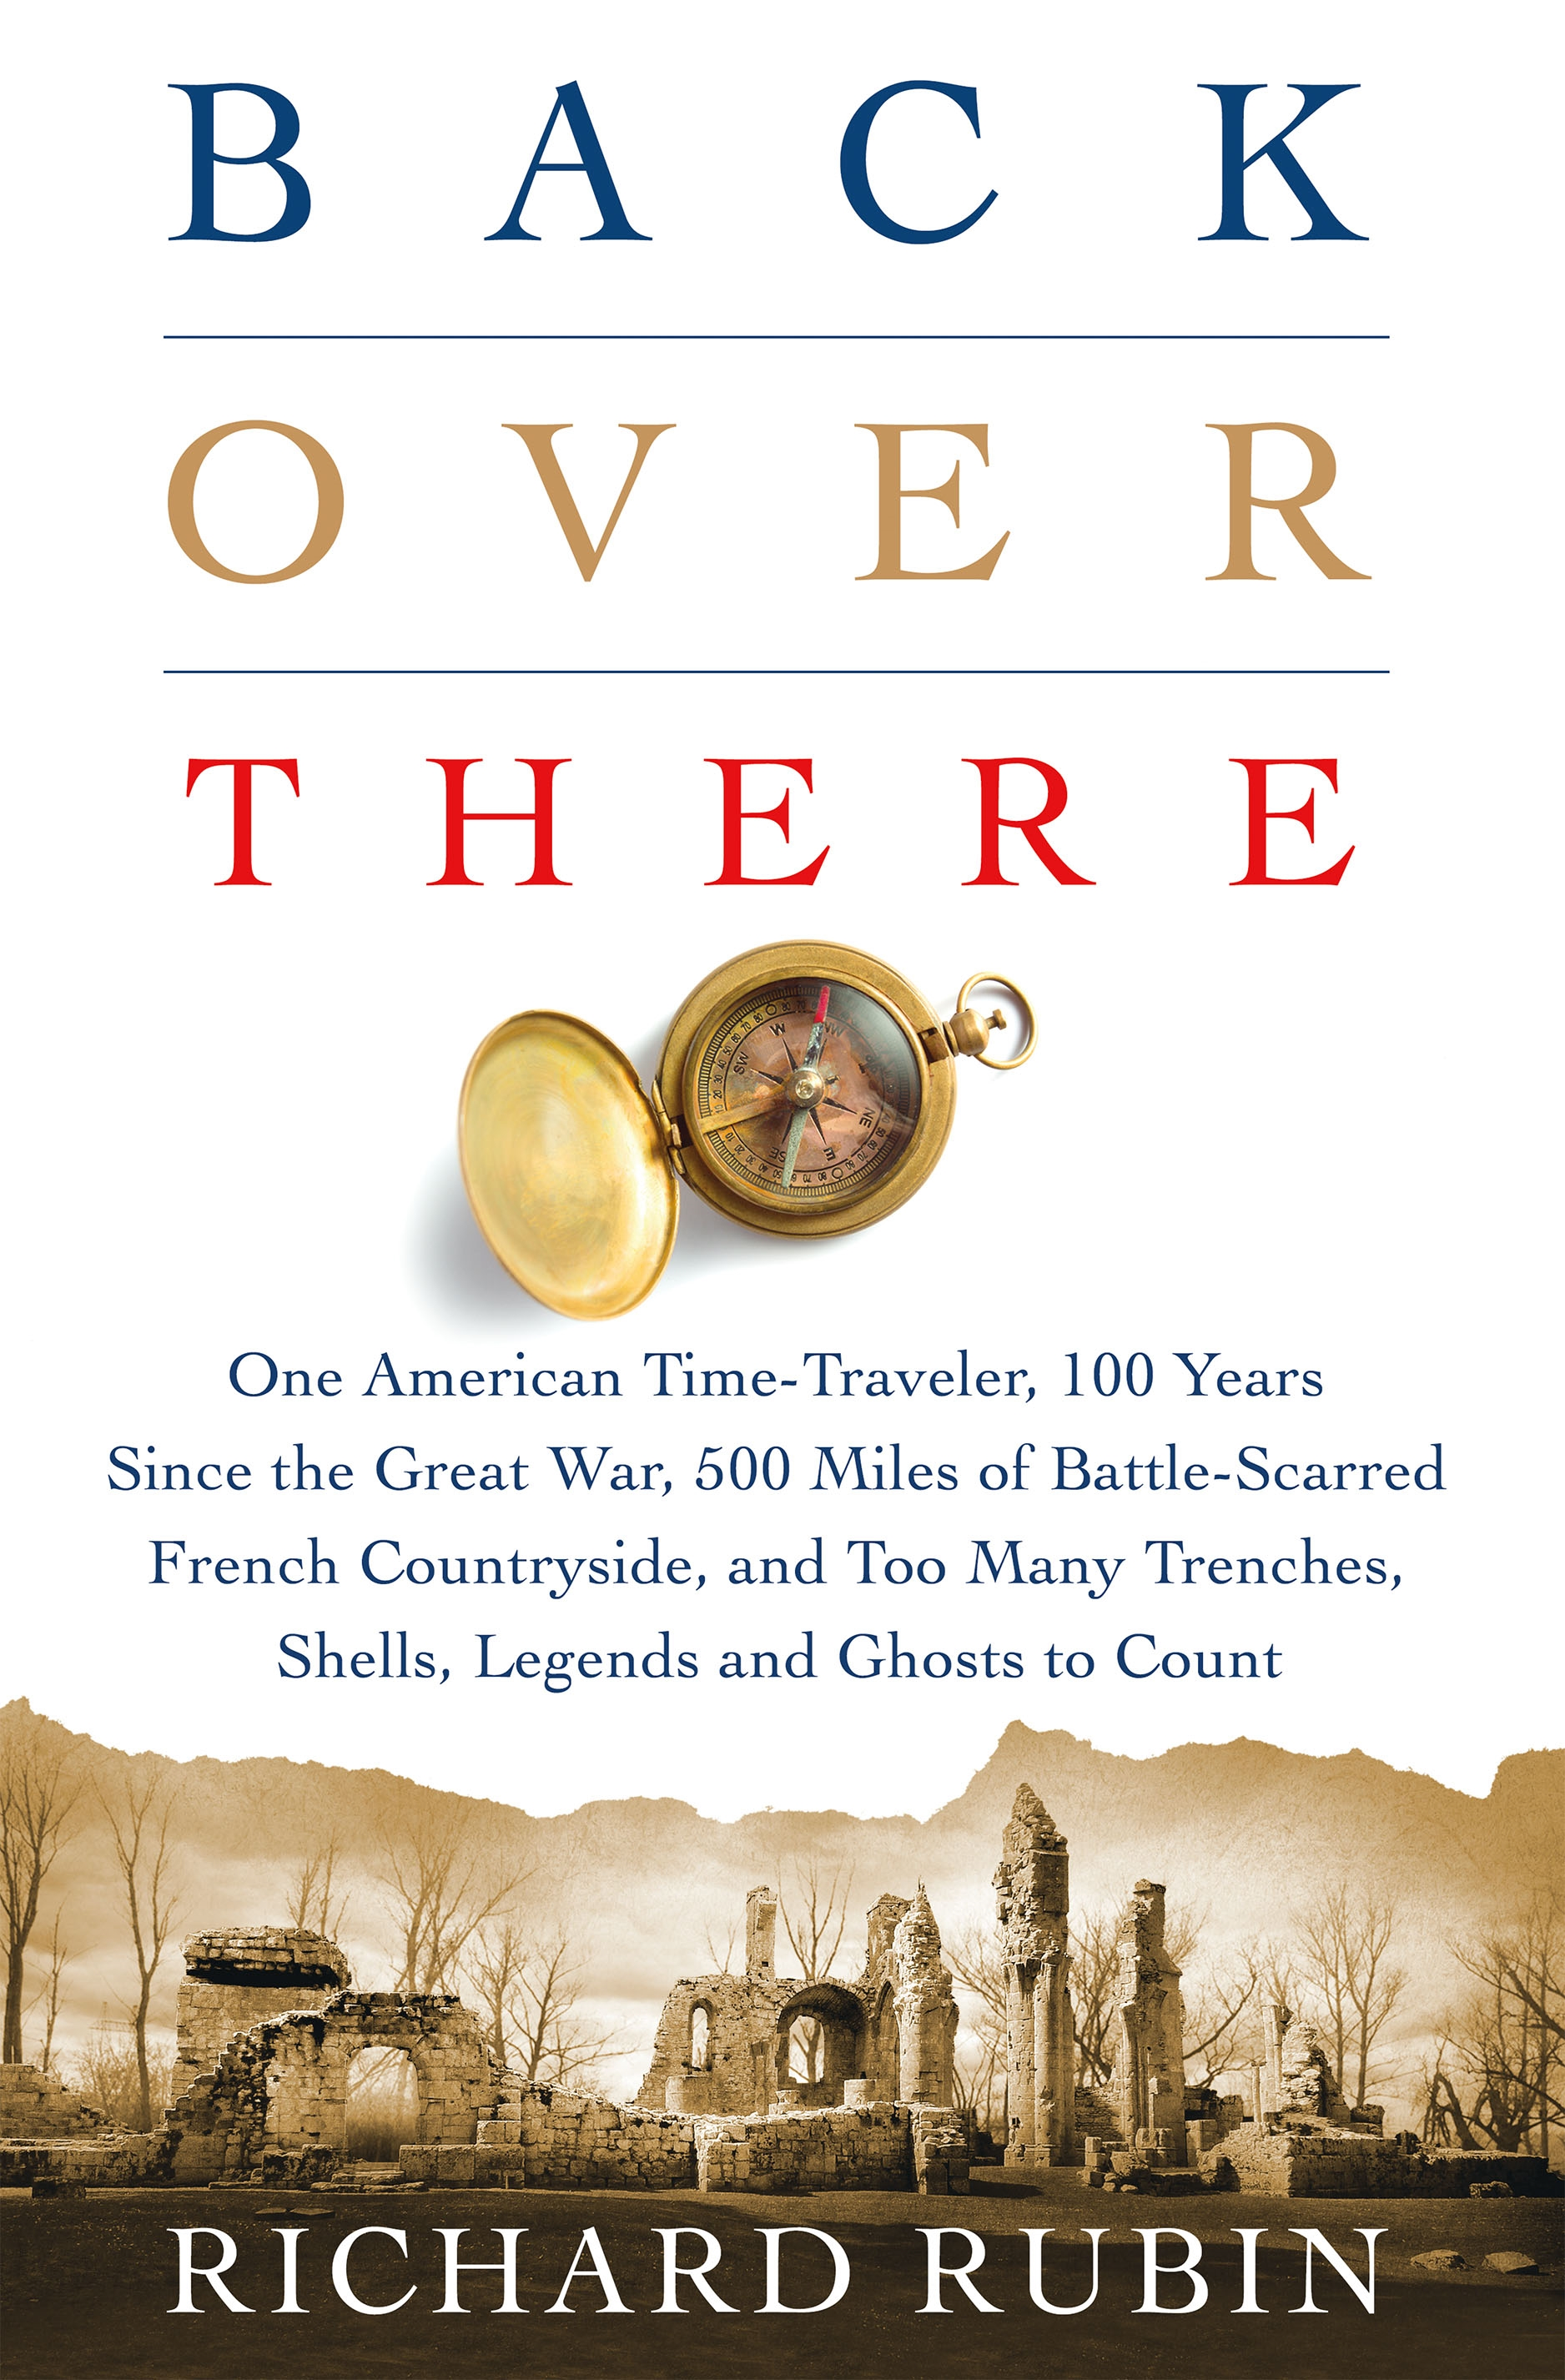 Back Over There One American Time-Traveler, 100 Years Since the Great War, 500 Miles of Battle-Scarred French Countryside, and Too Many Trenches, Shells, Legends and Ghosts to Count